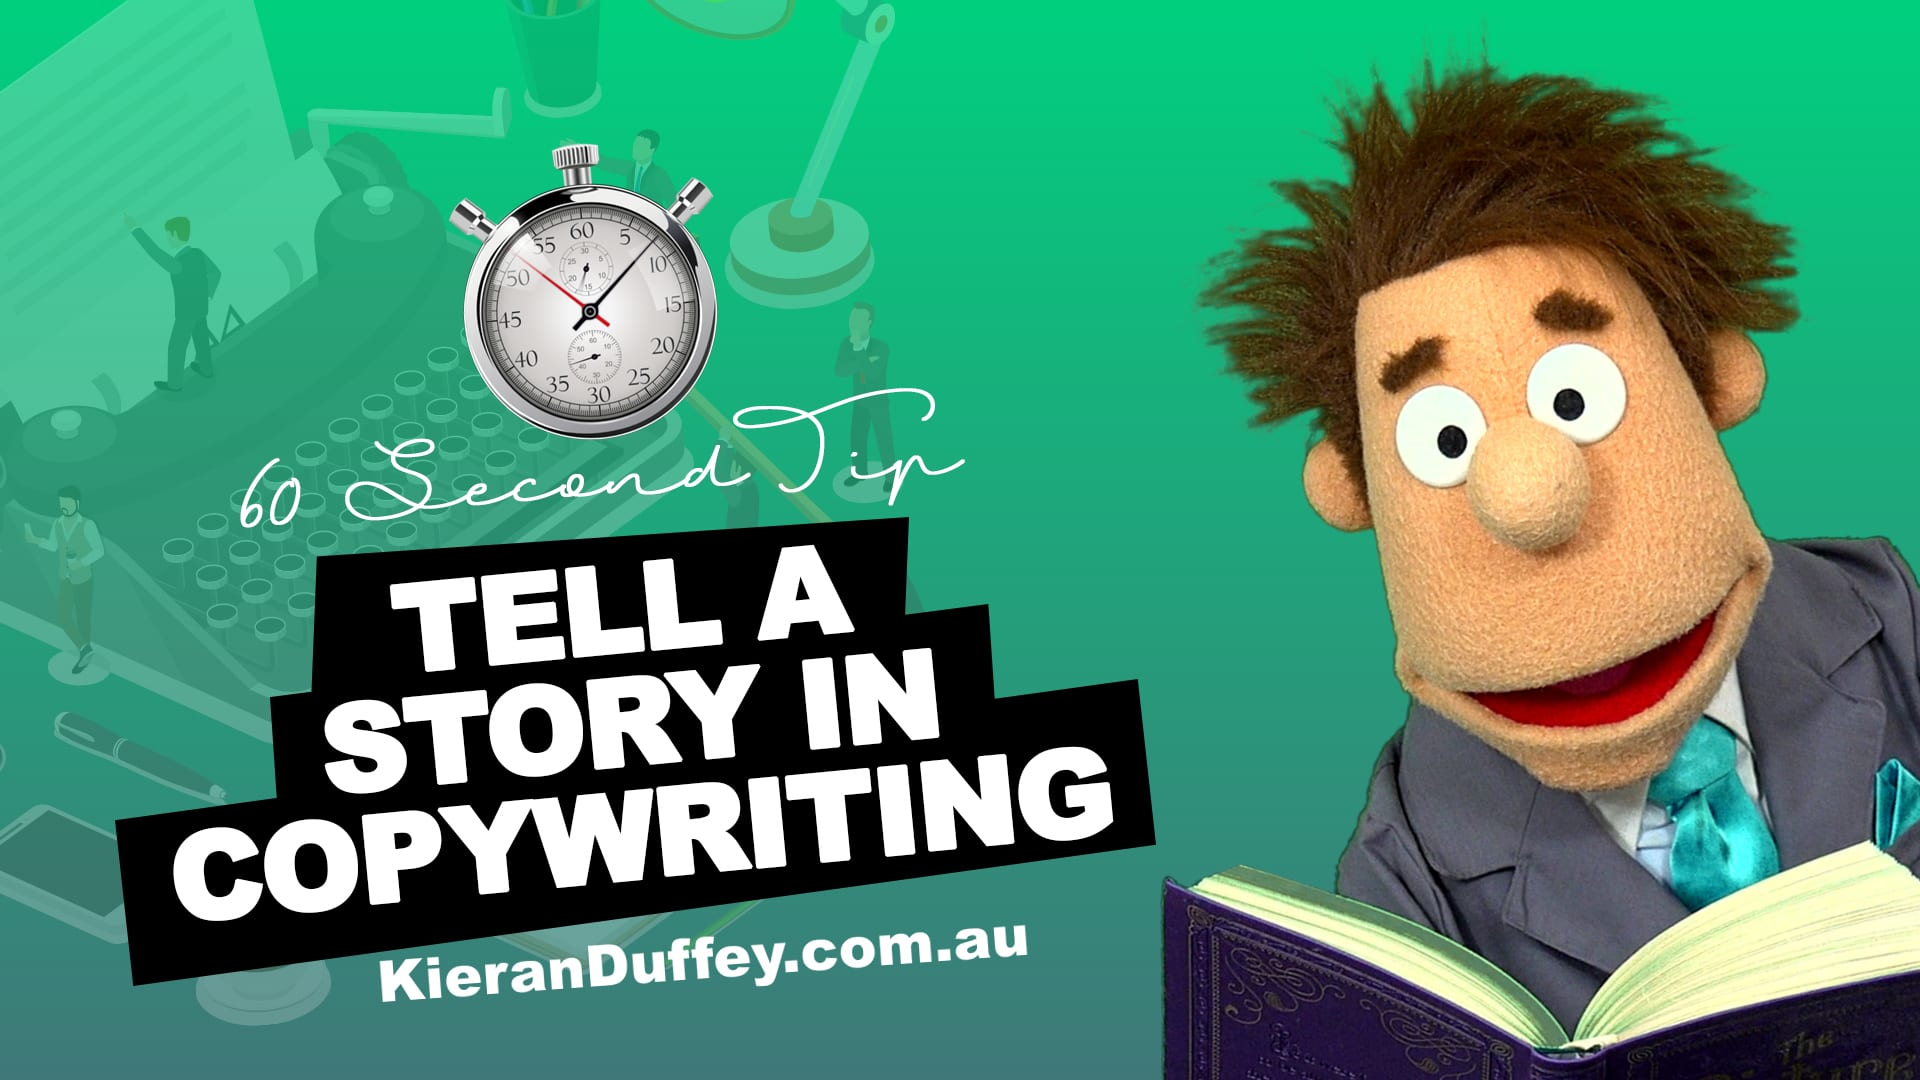 Video explaining importance of telling a story in copywriting